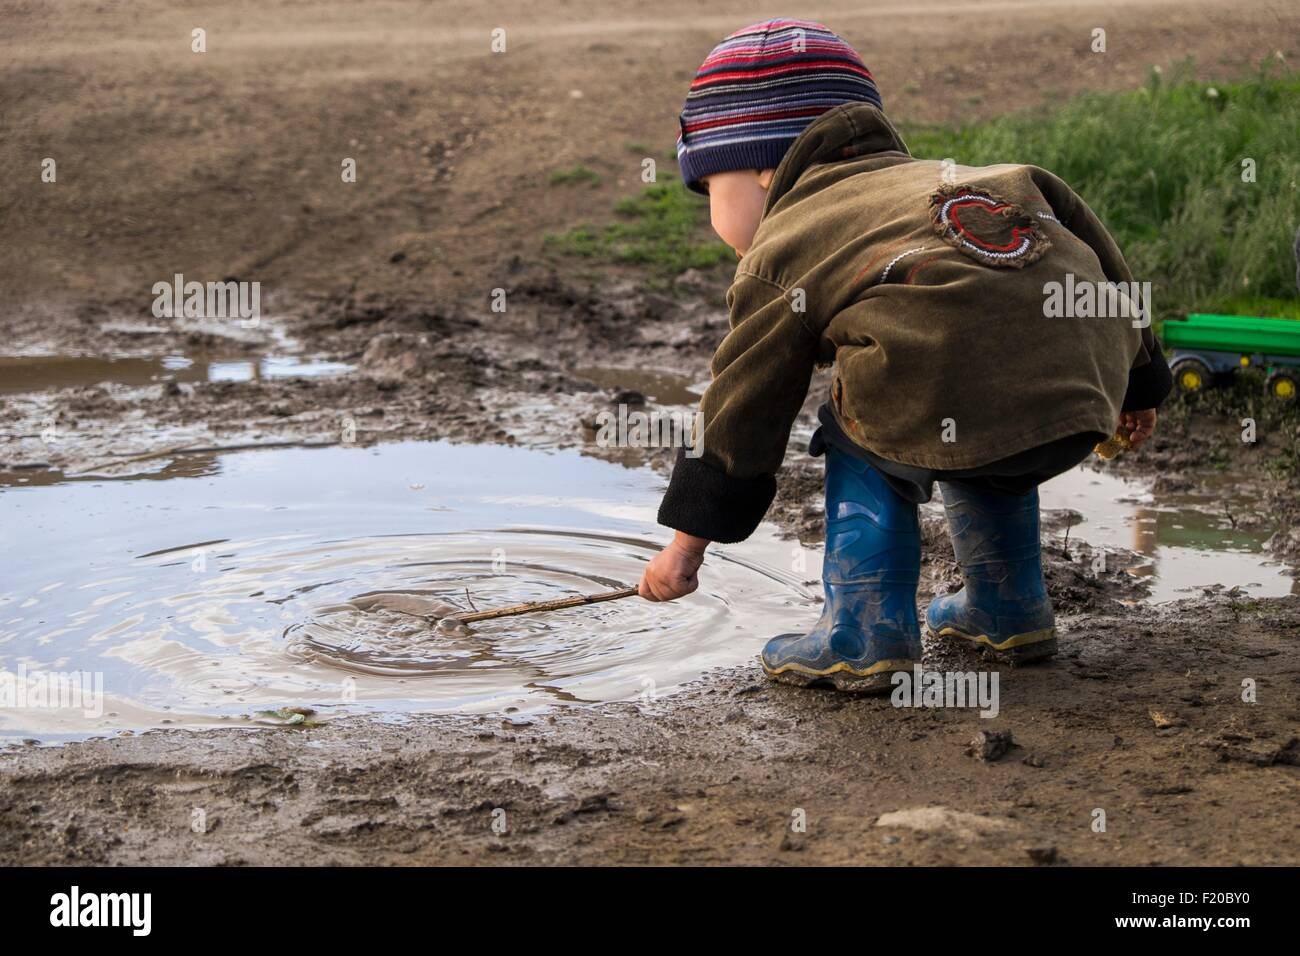 Male toddler wearing rubber boots playing with stick in puddle Stock Photo